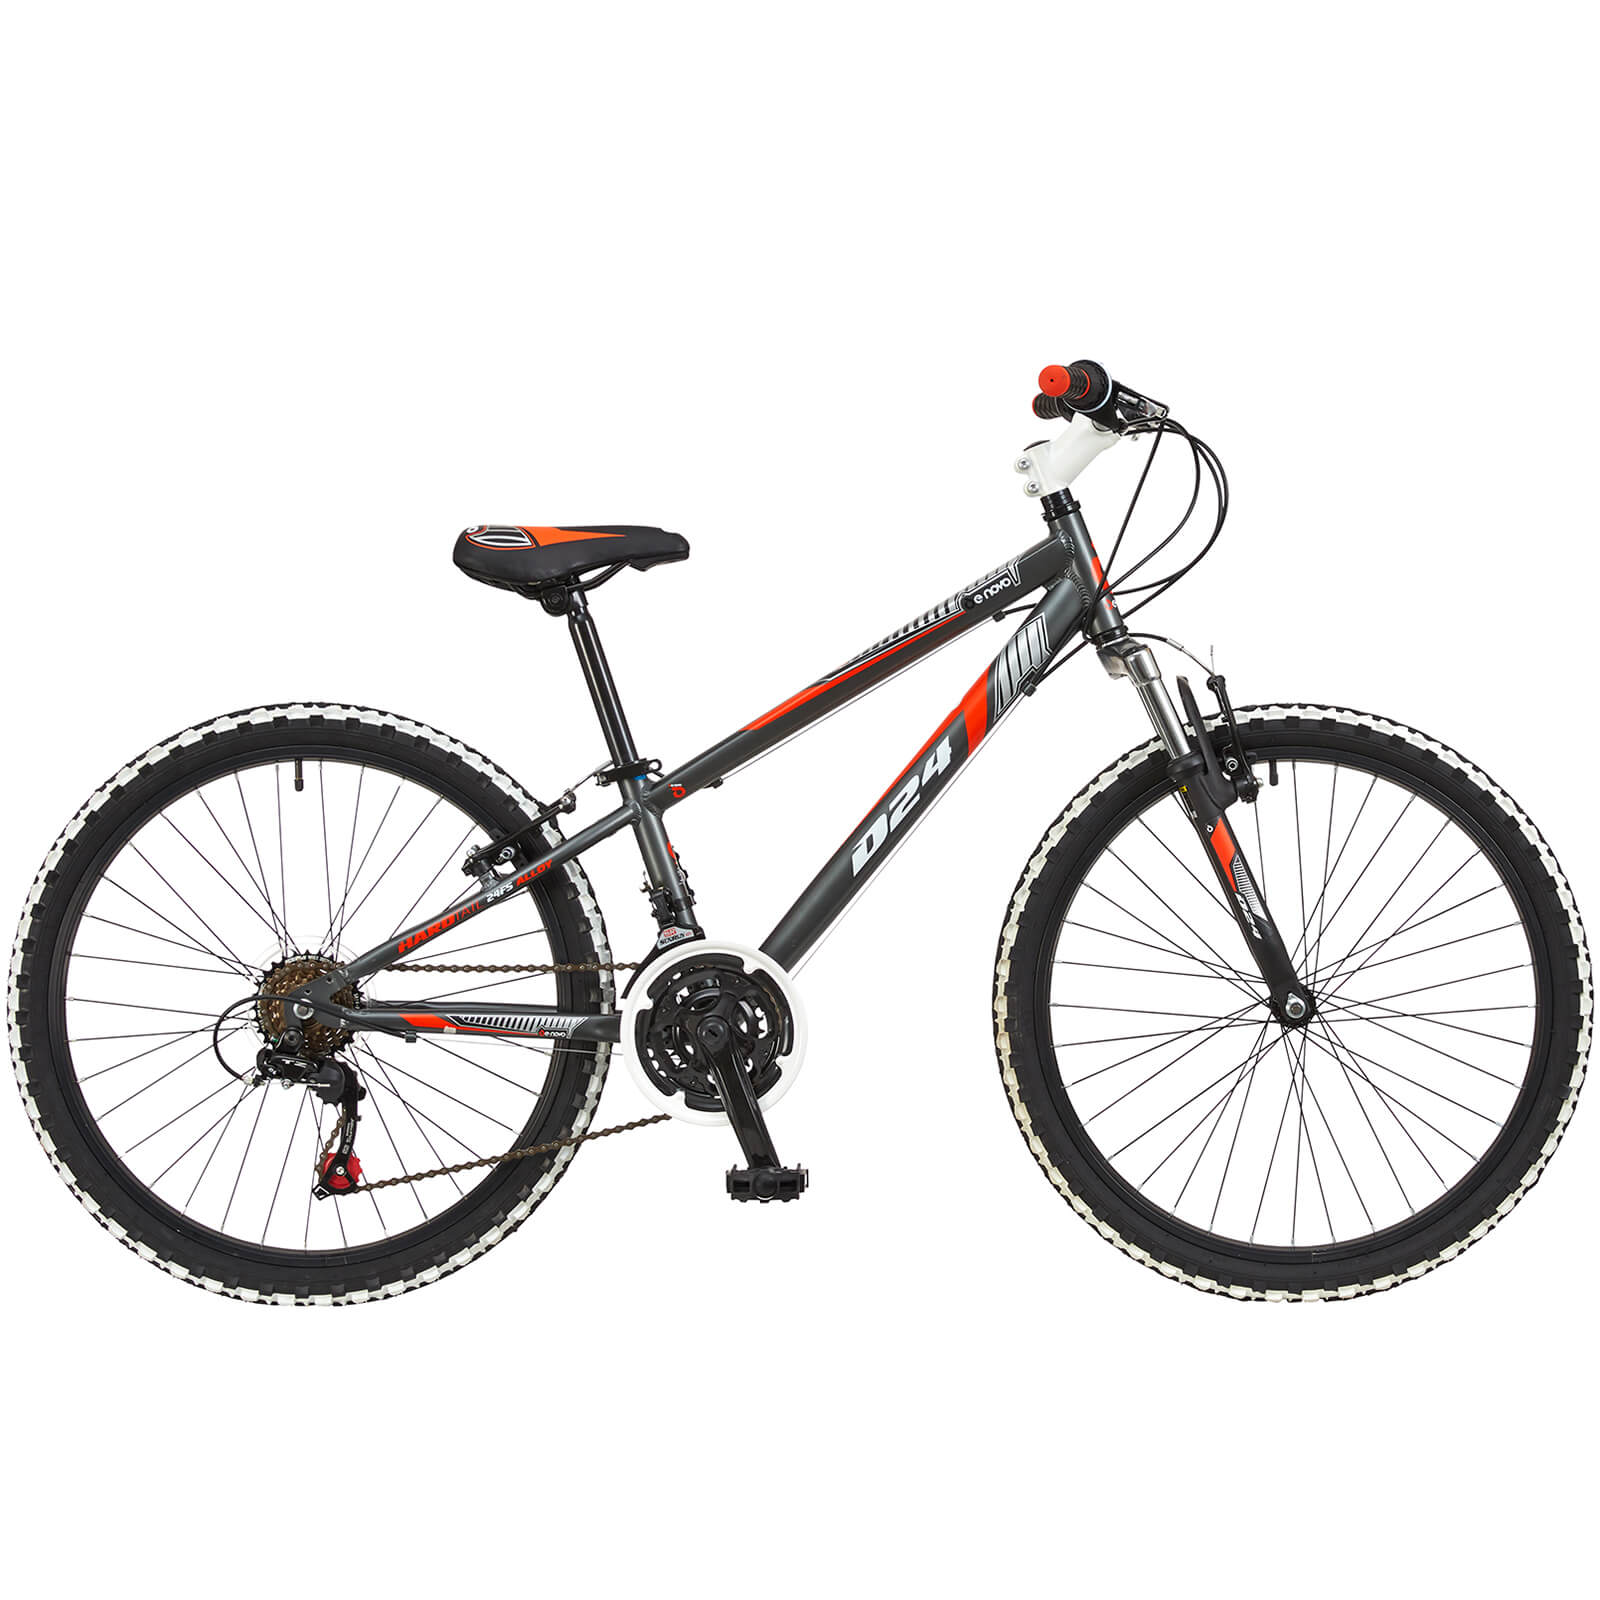 6a7727c2e Denovo Boys Suspension Alloy Bike - 24